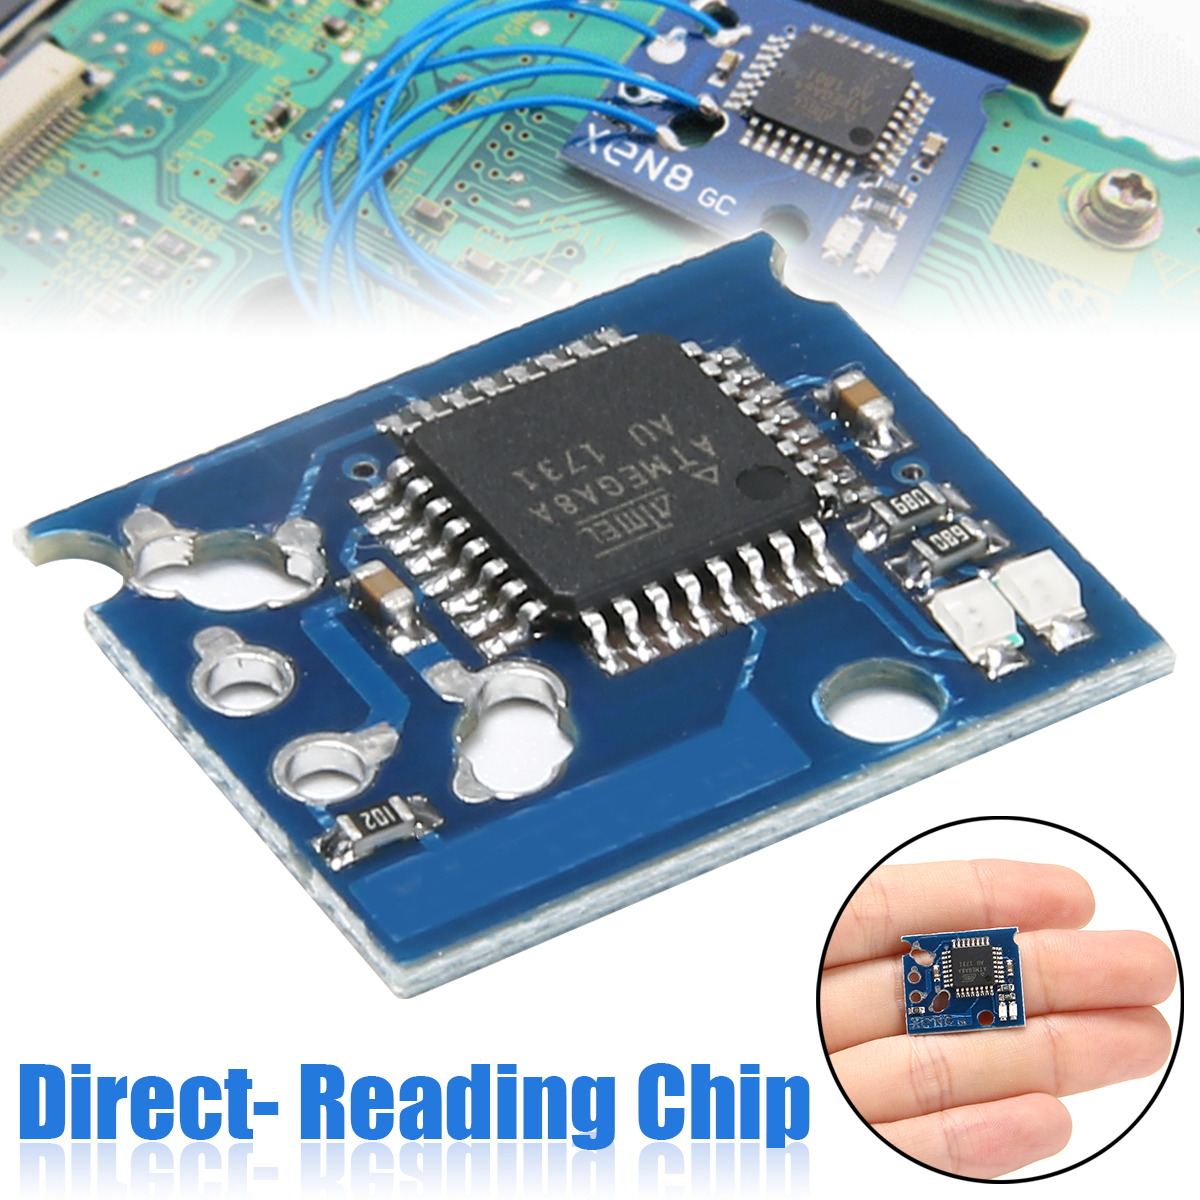 New Mod GC Direct- Reading Chip NGC For Gamecube Game Console High Quality  NGC Direct- Reading Chip